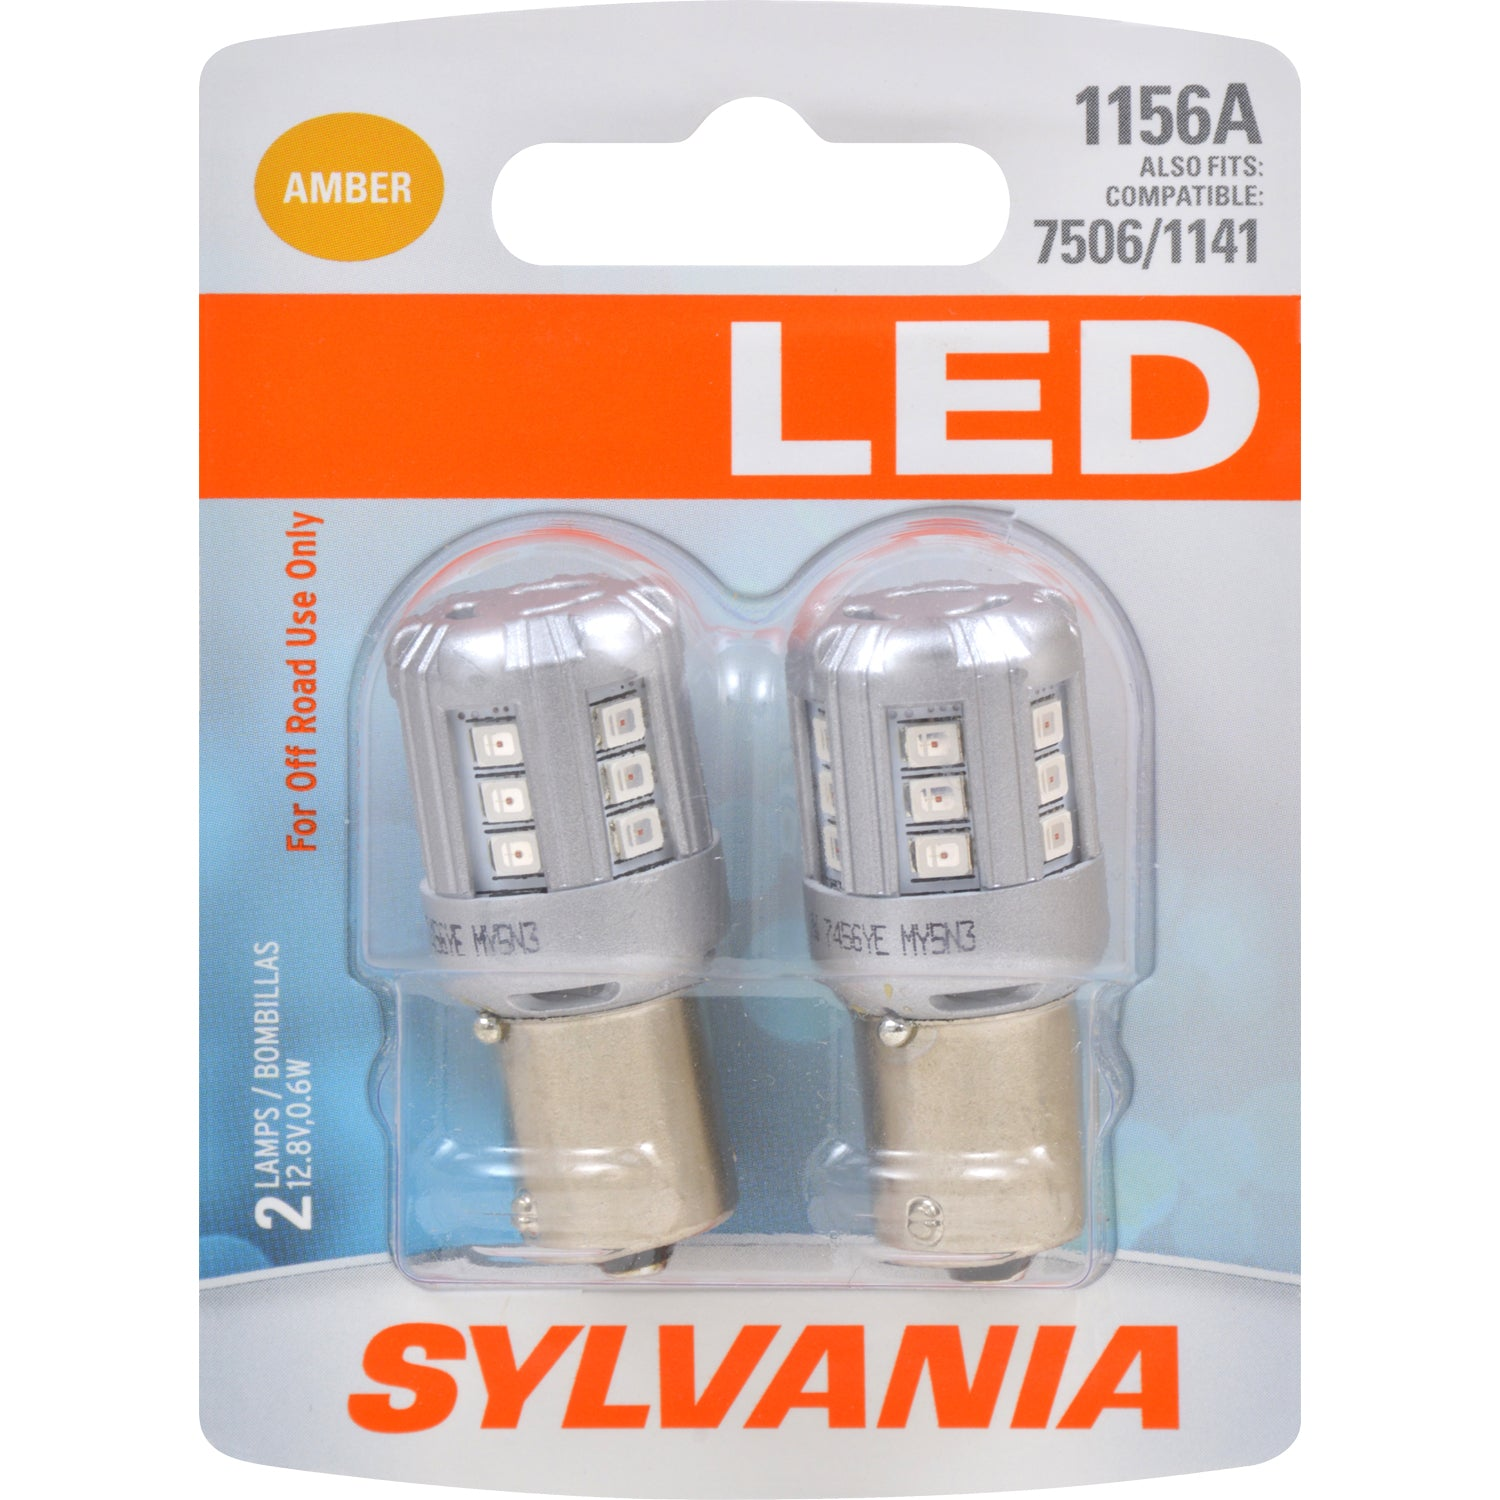 2-PK SYLVANIA LED 1156 Amber Automotive Bulb - also fits 7506 & 1141